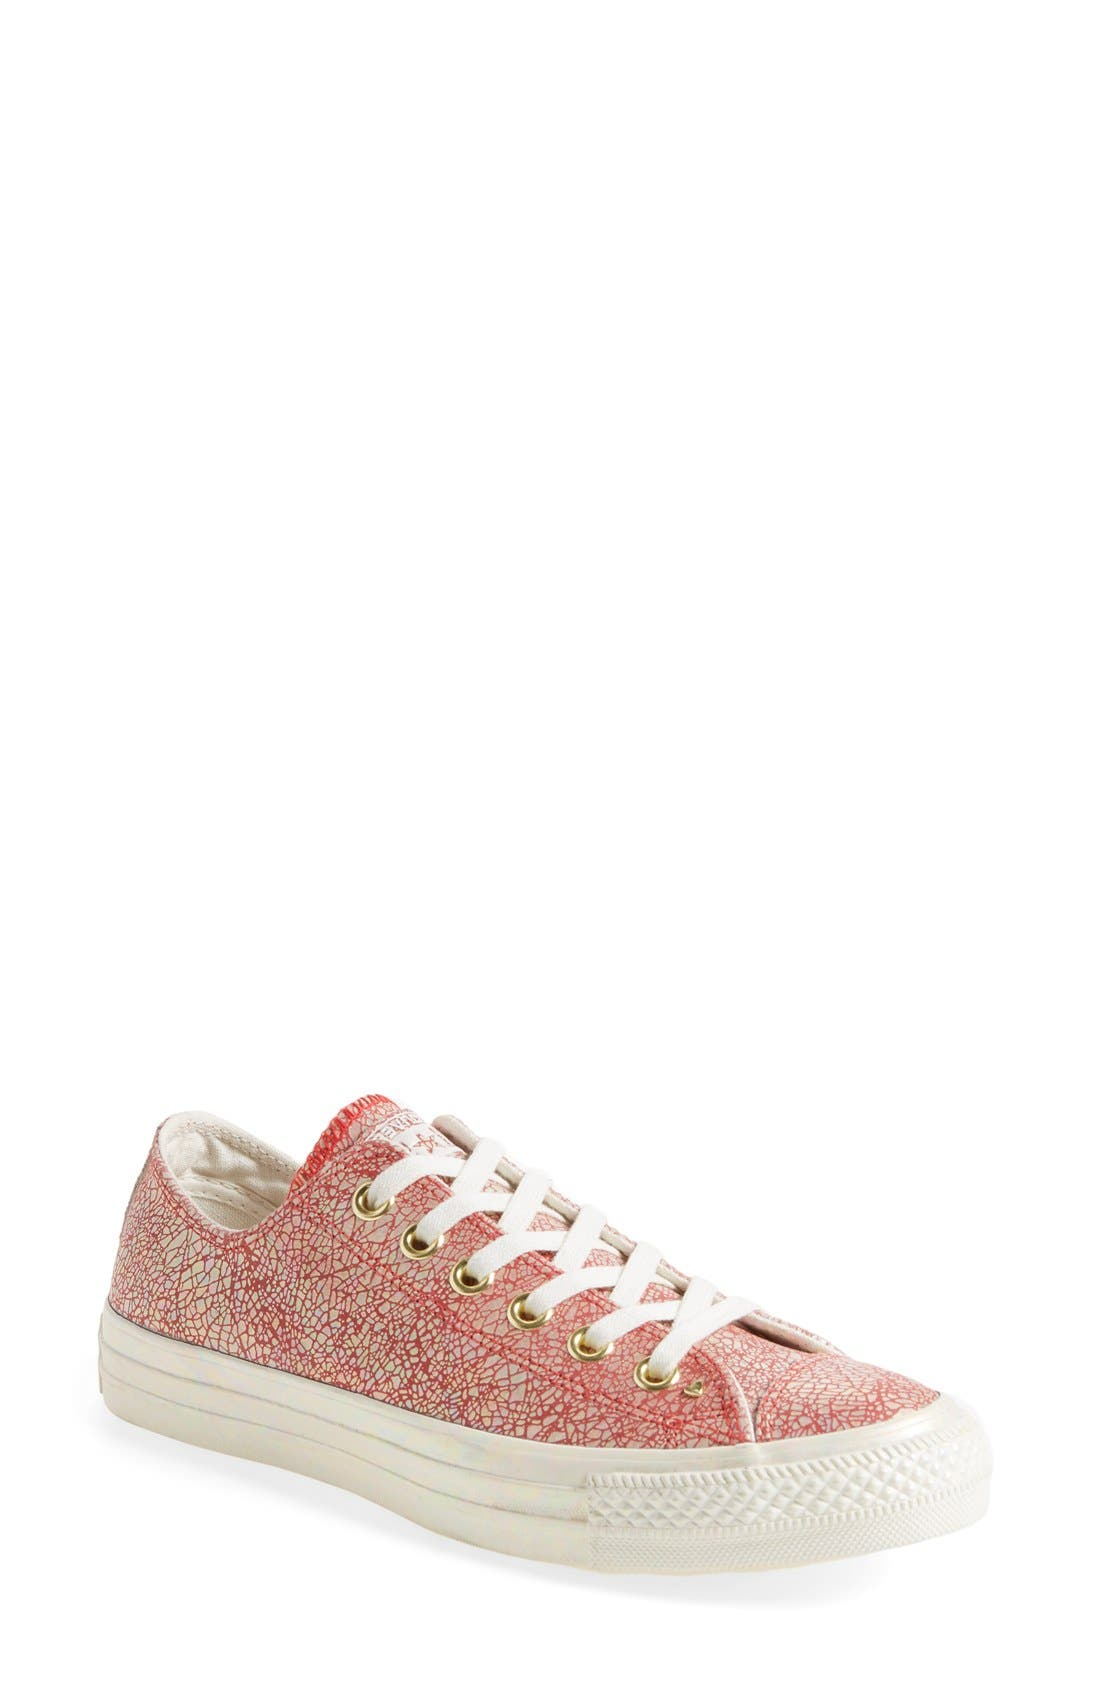 Alternate Image 1 Selected - Converse Chuck Taylor® All Star® 'Oil Slick - Ox' Sneaker (Women)